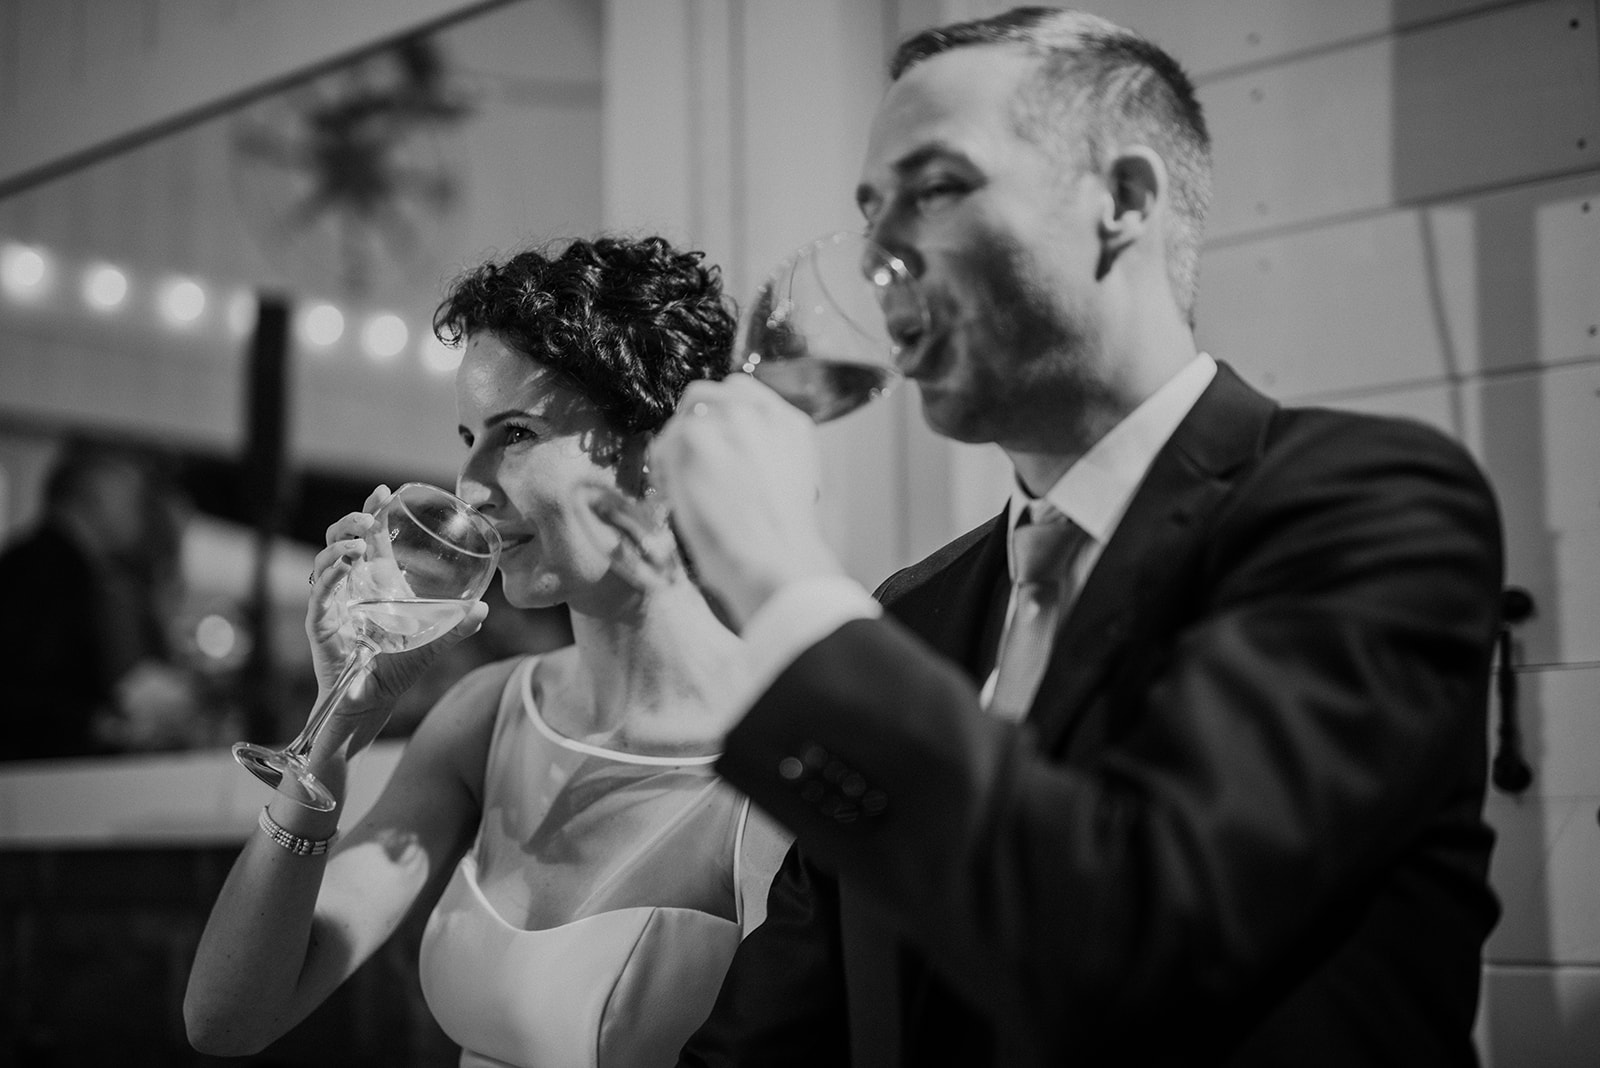 A bride and groom sip champagne after the toasts at their reception at Blue Hill Farm in Waterford, VA.